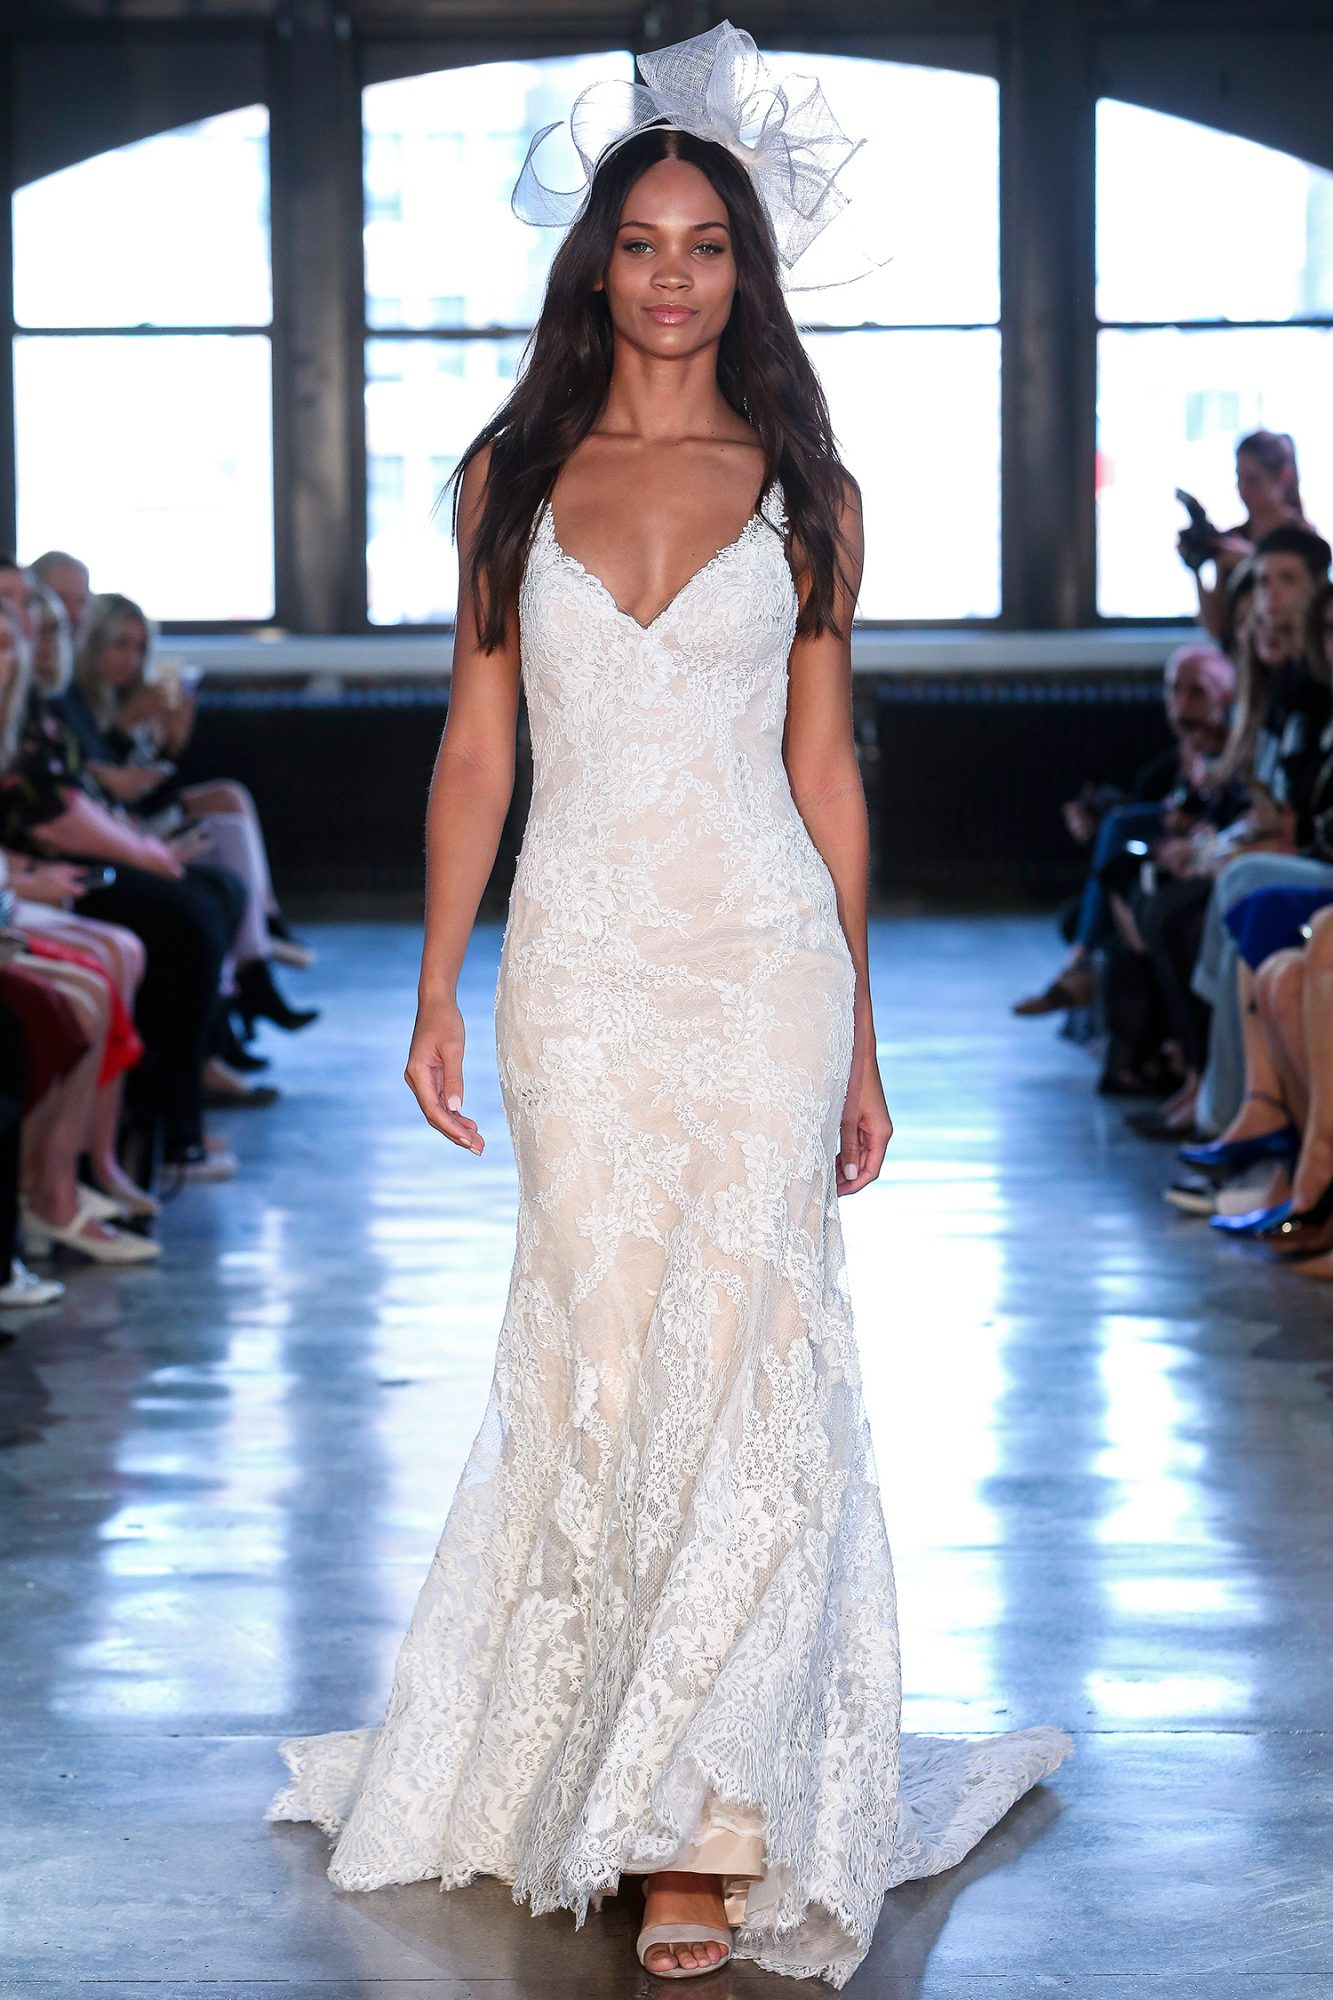 watters wedding dress spring 2019 v-neck trumpet with embroidery